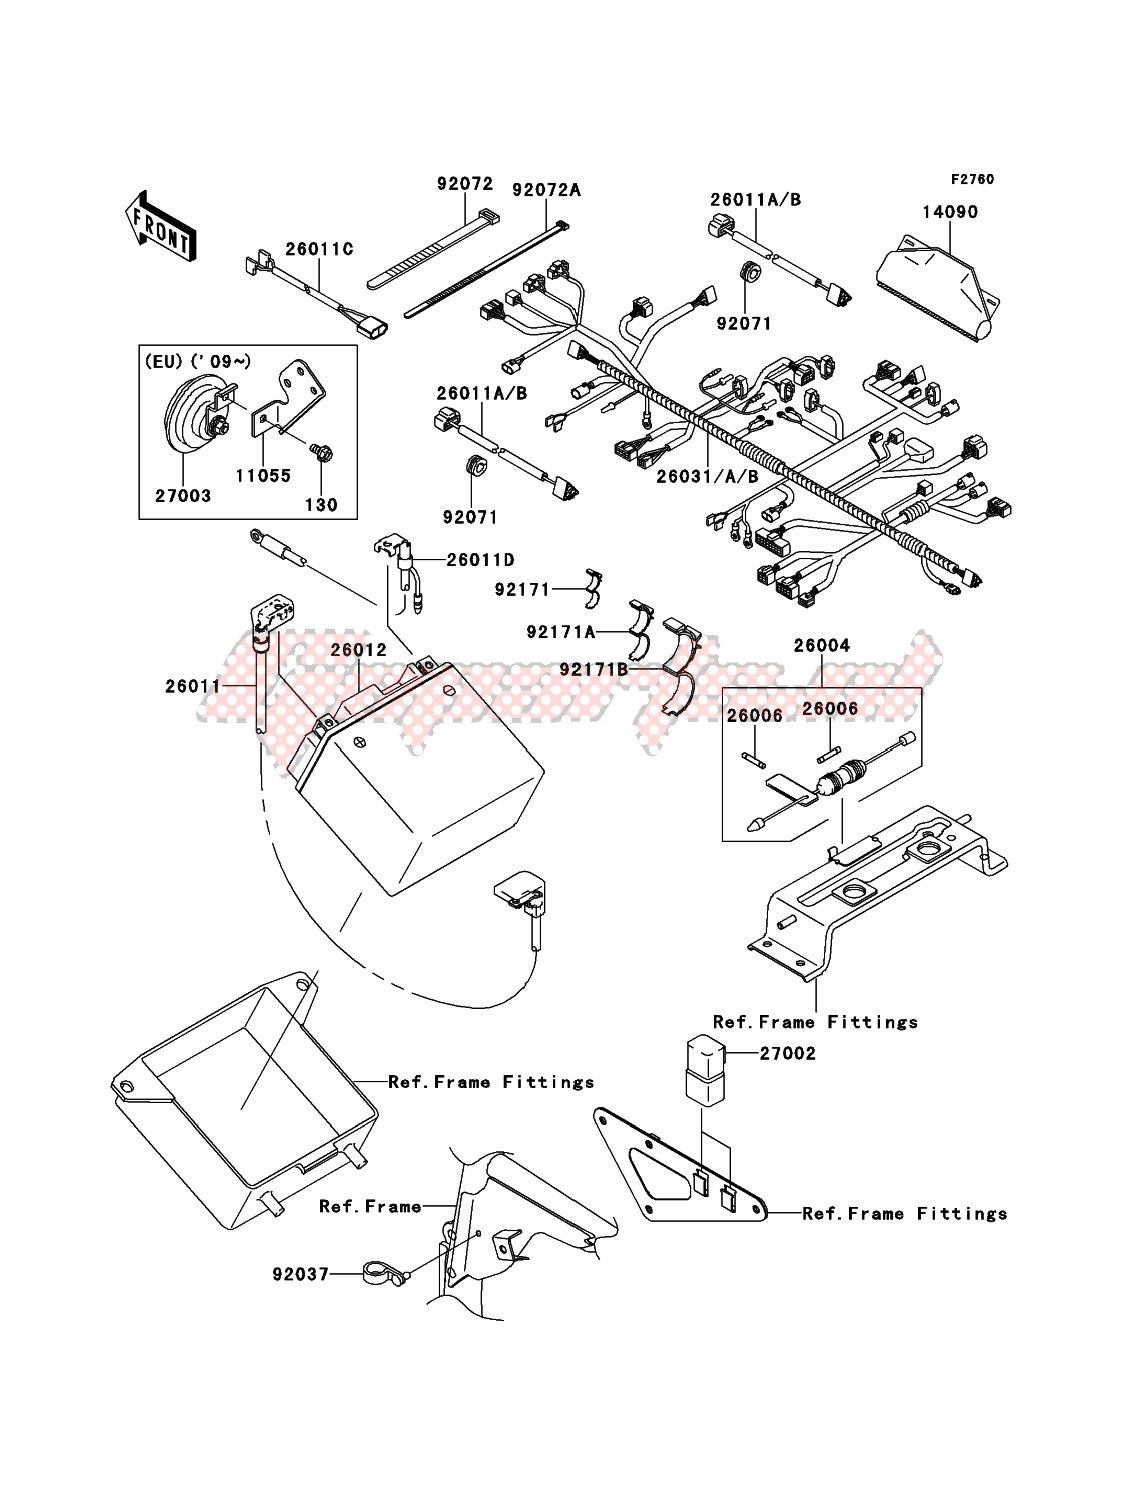 Chassis Electrical Equipment image